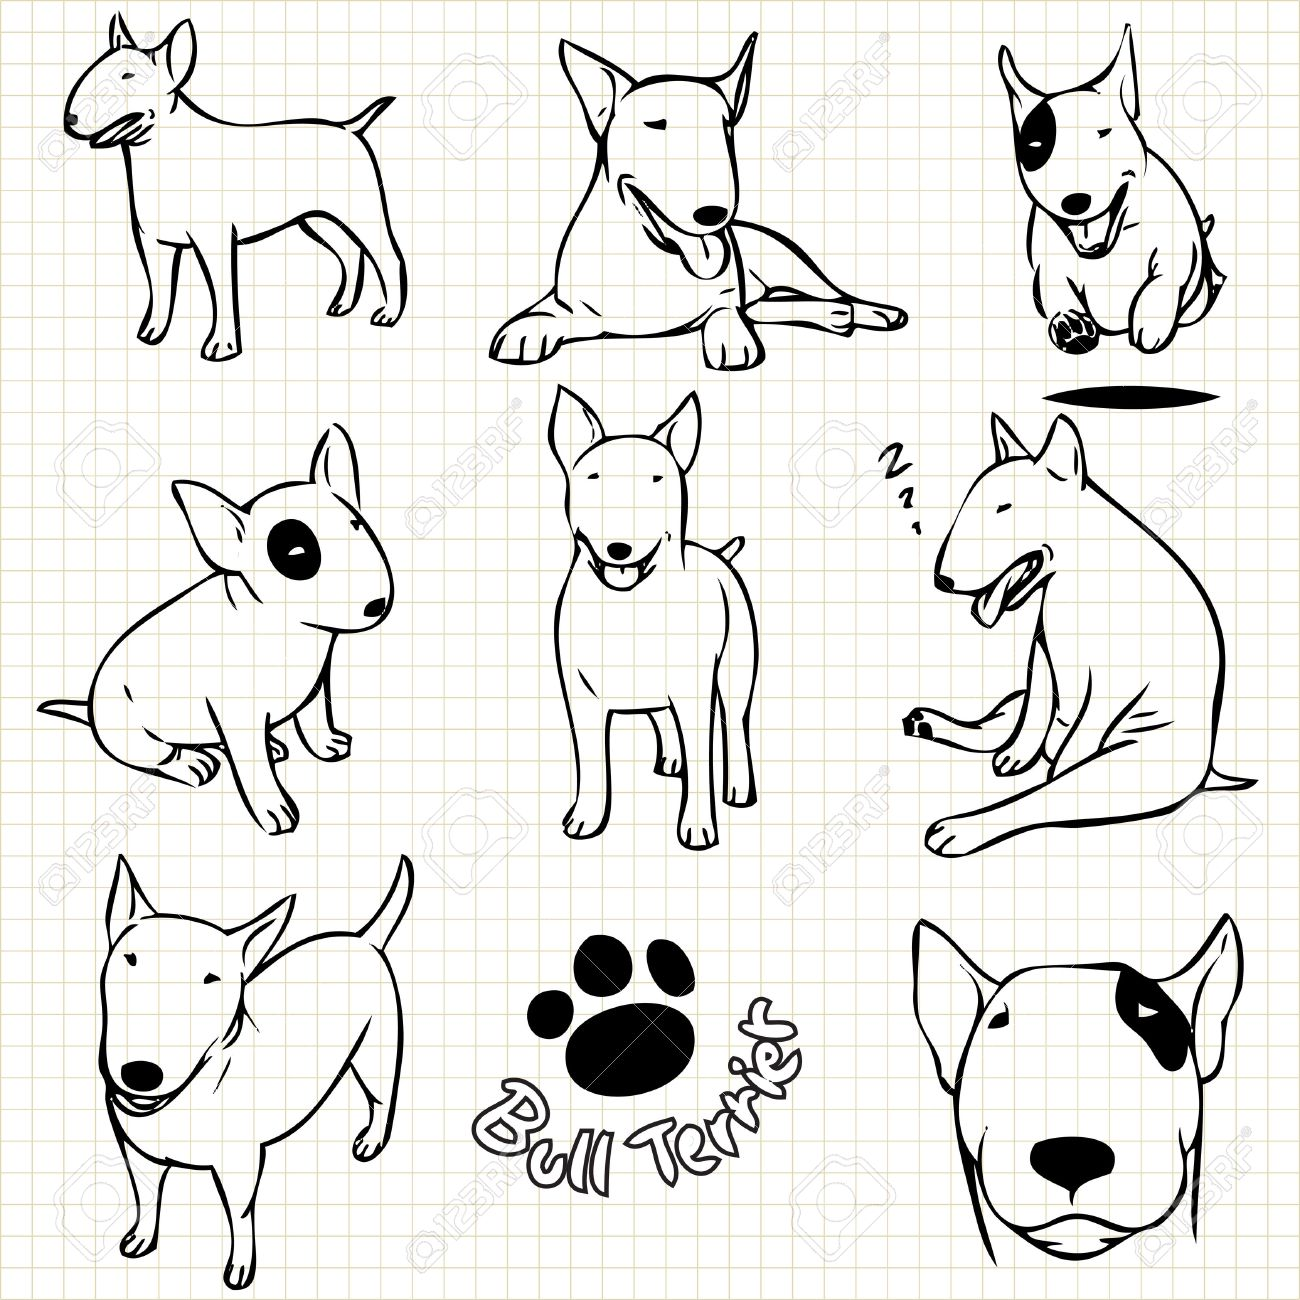 1300x1300 Line Drawing Of Bull Terrier Dog Set On Grid Paper Use